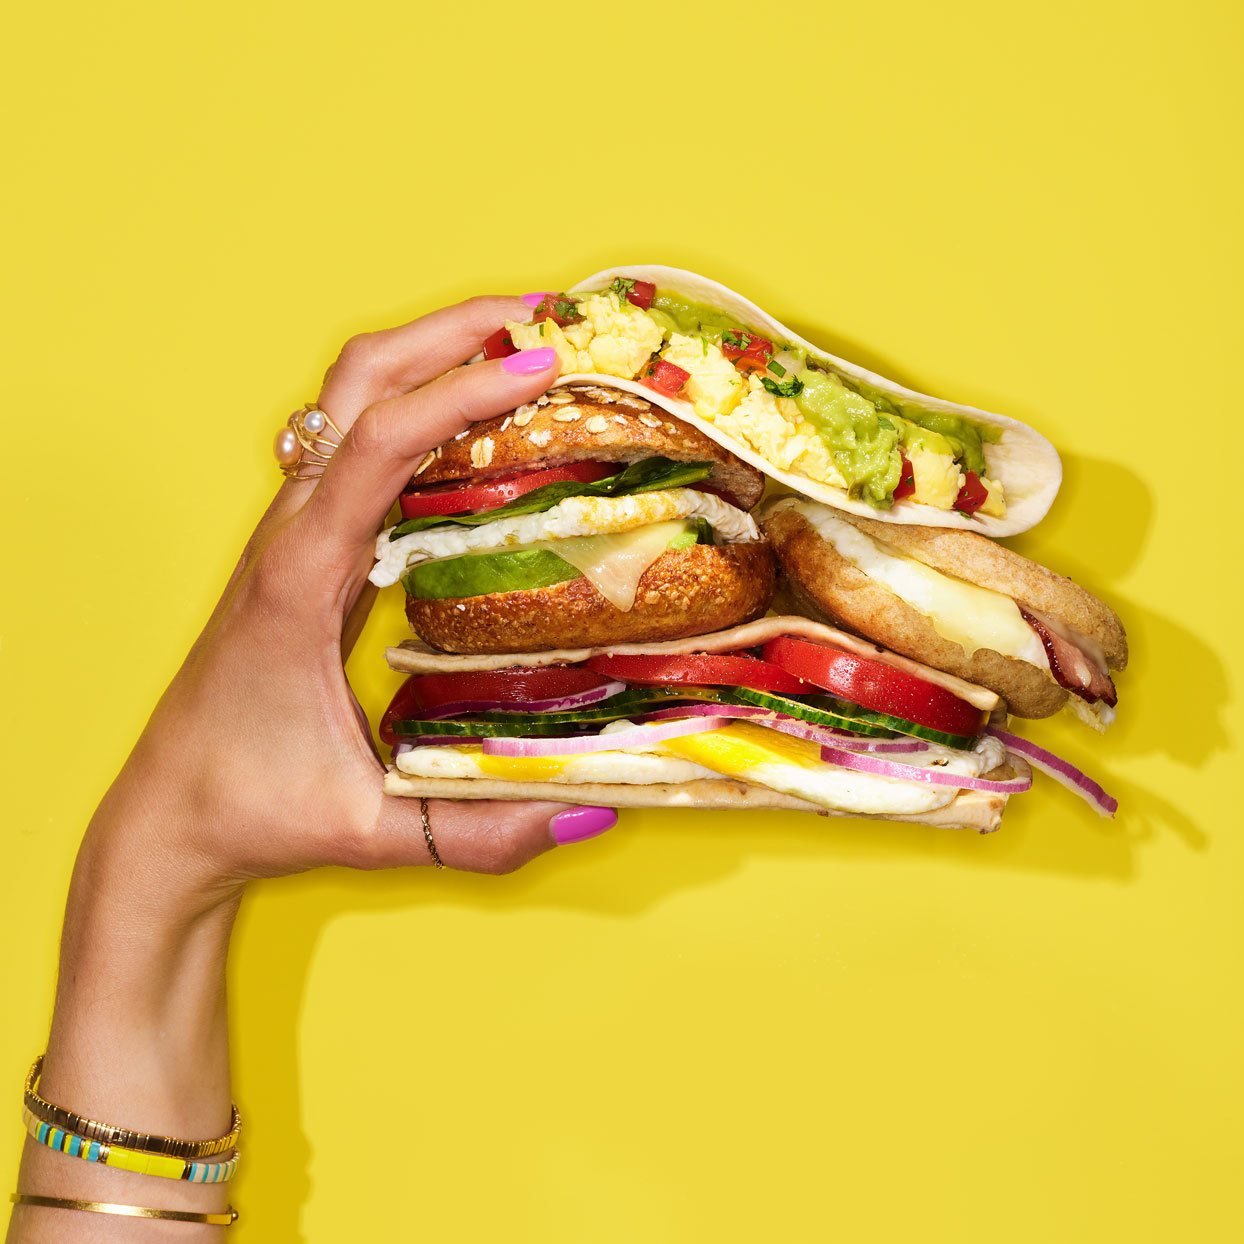 hand holding several precariously stacked breakfast sandwiches